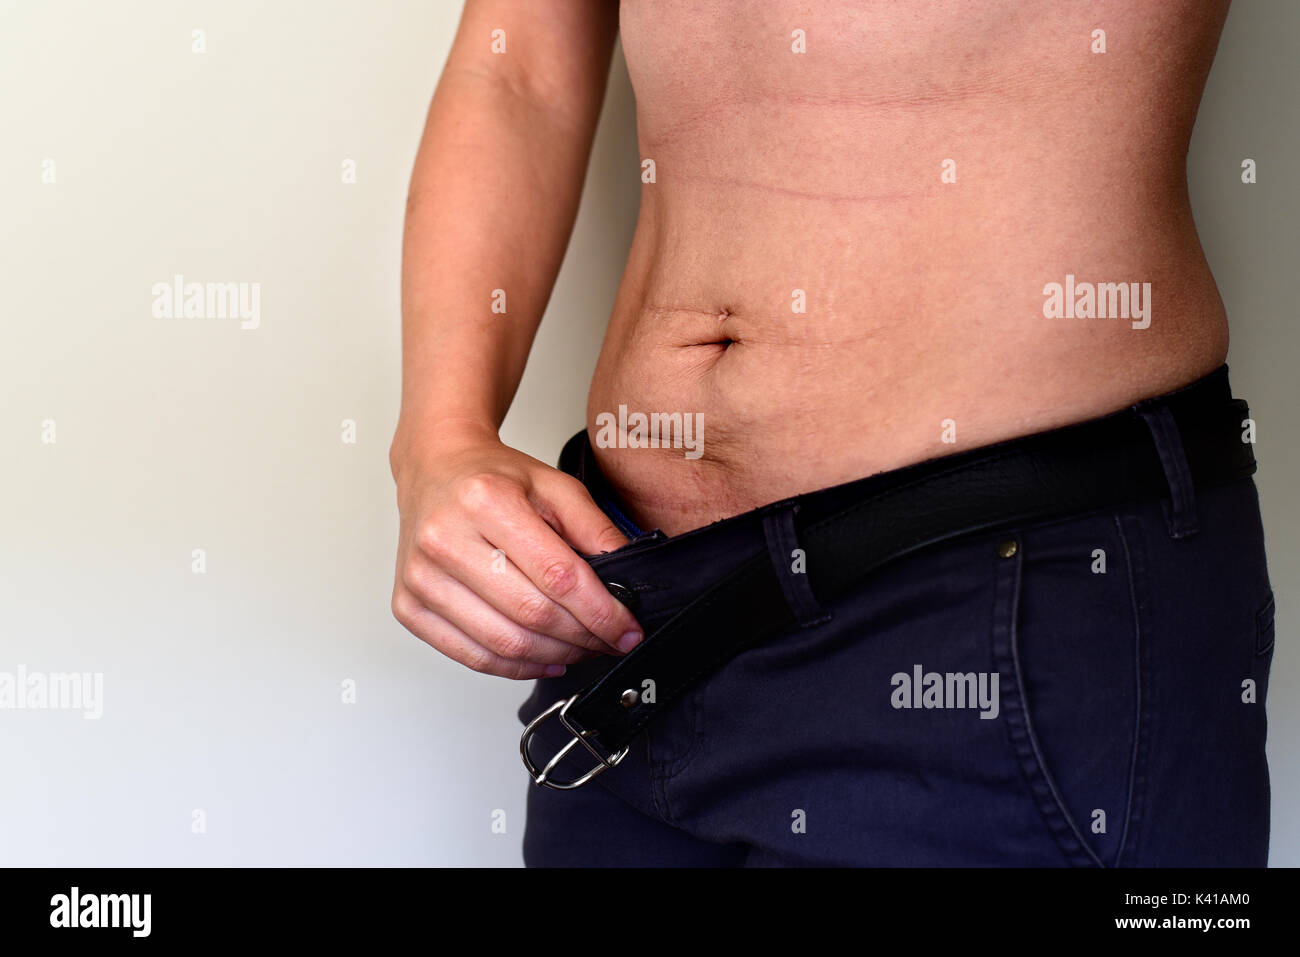 pregnancy stretch marks after weight loss